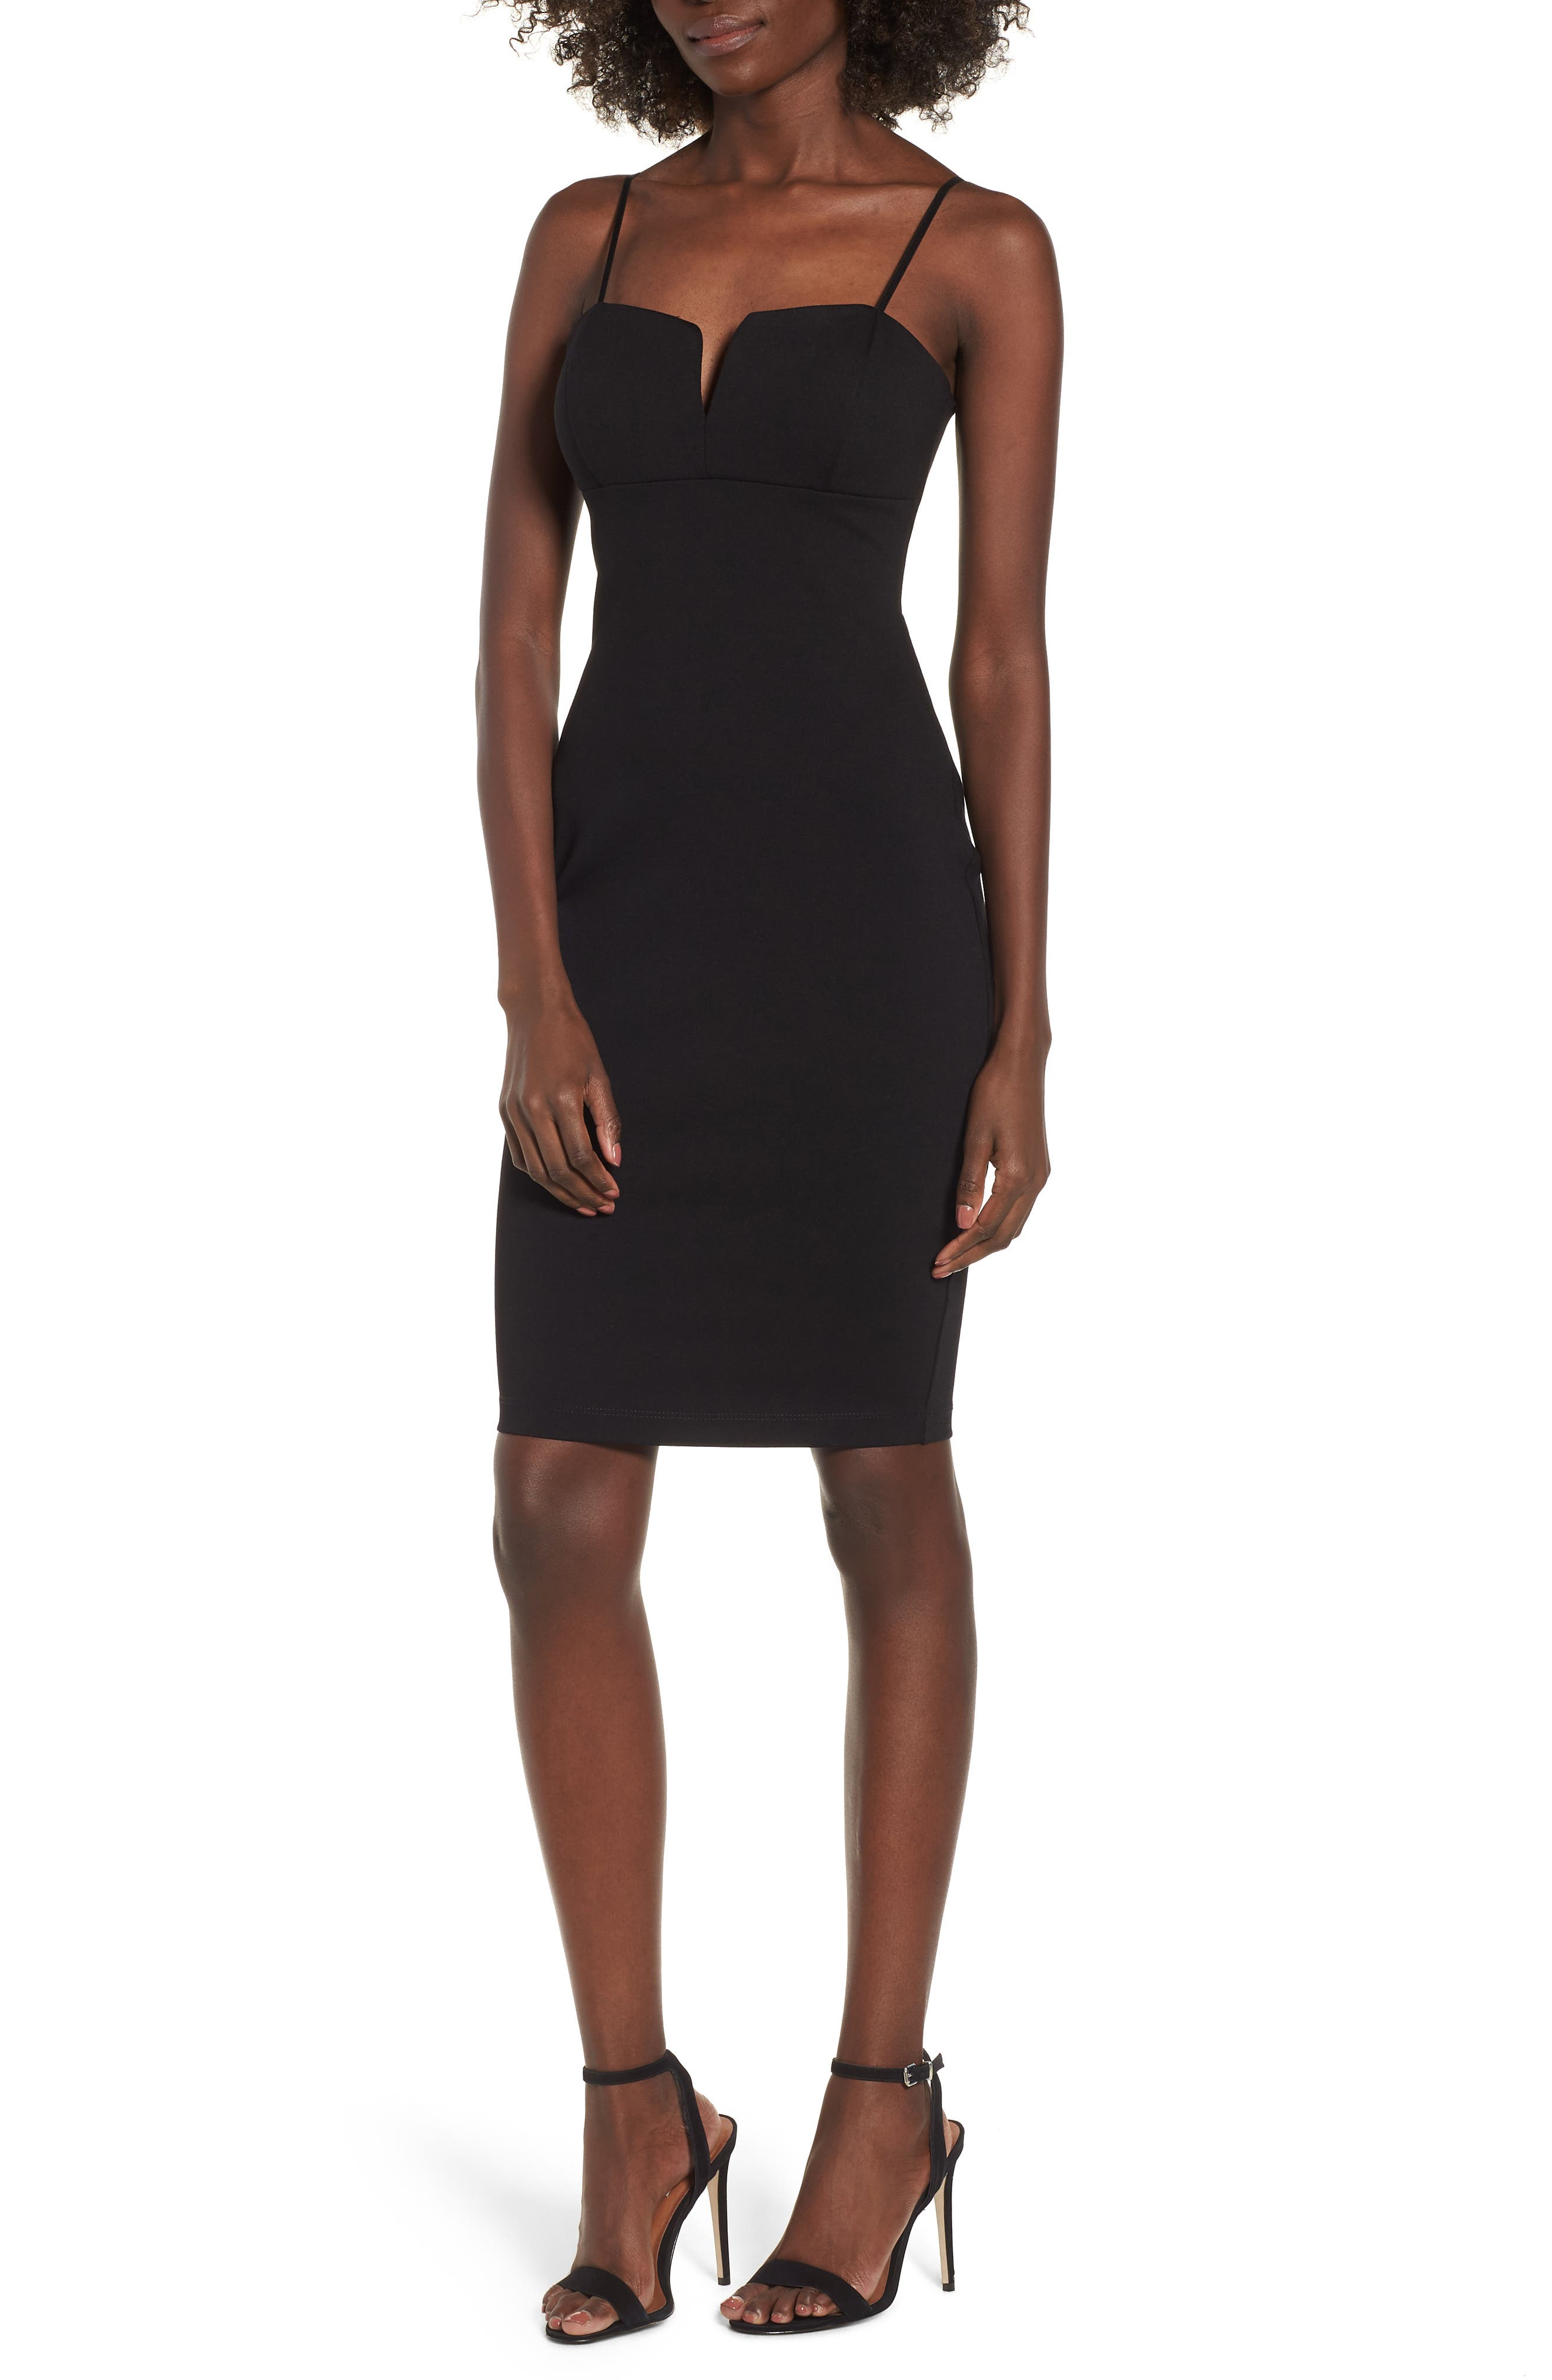 Love, Nickie Lew V-Front Bodycon Dress